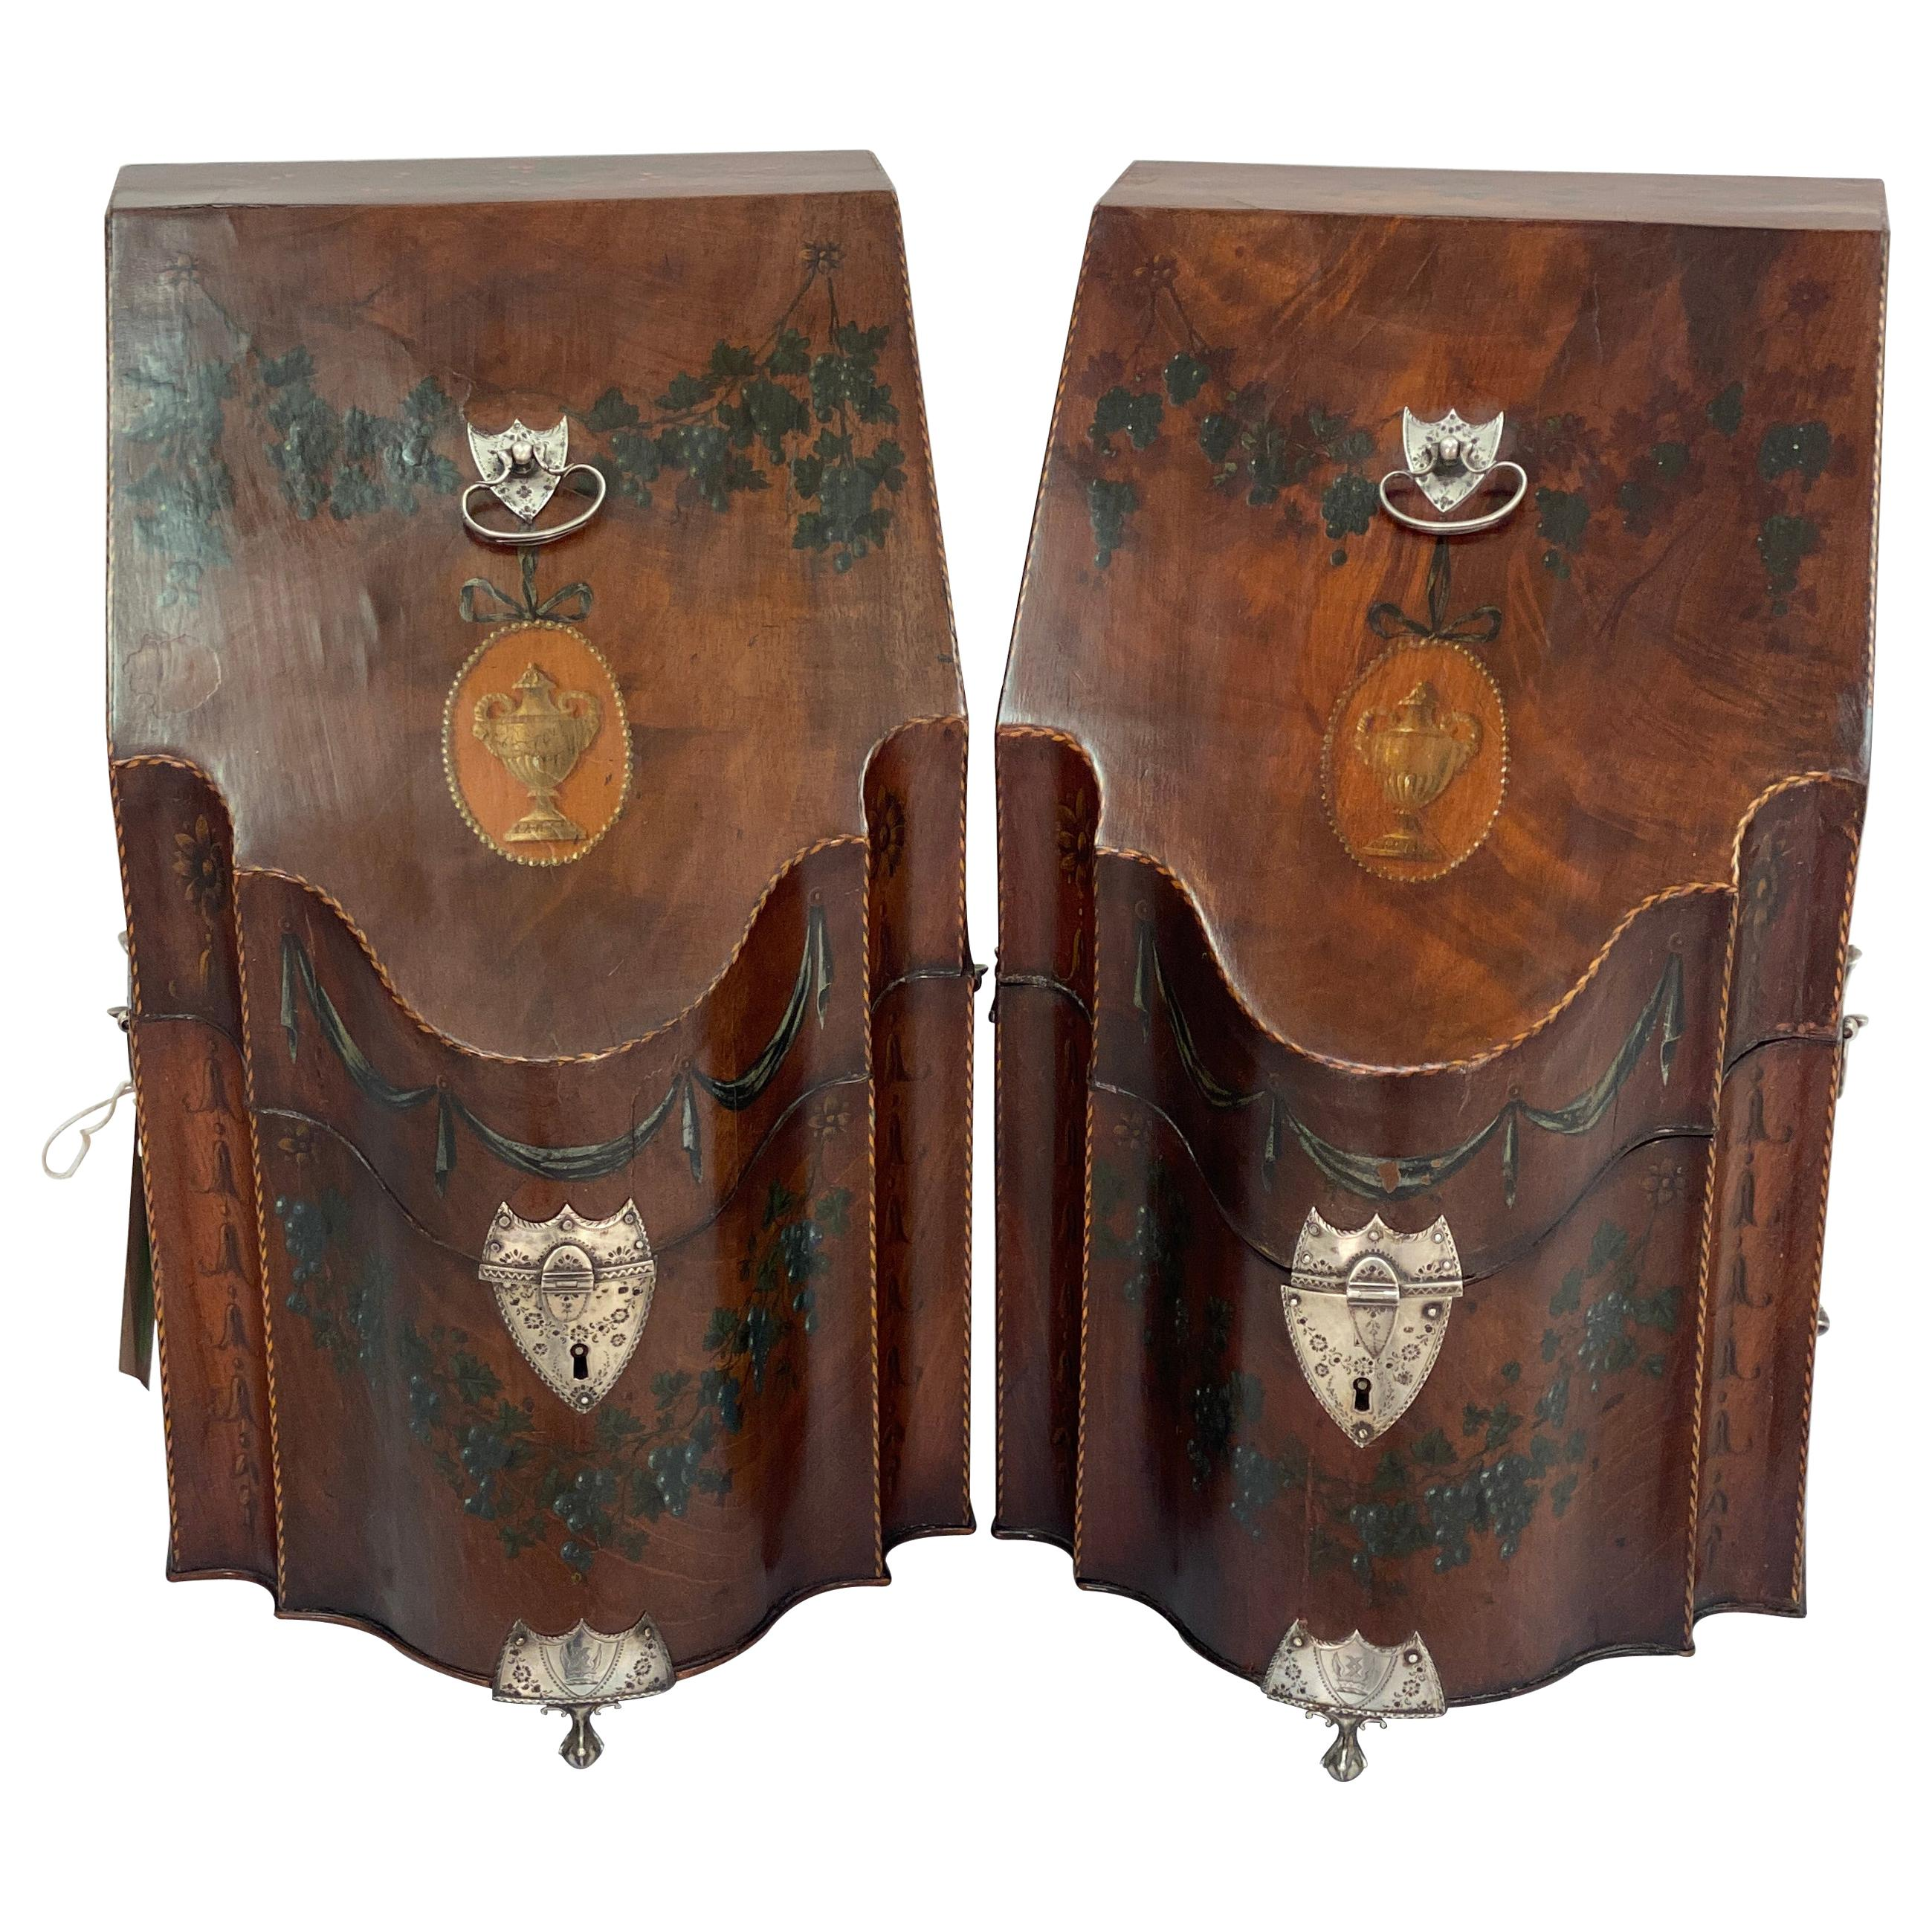 18th Century George III Knife Boxes